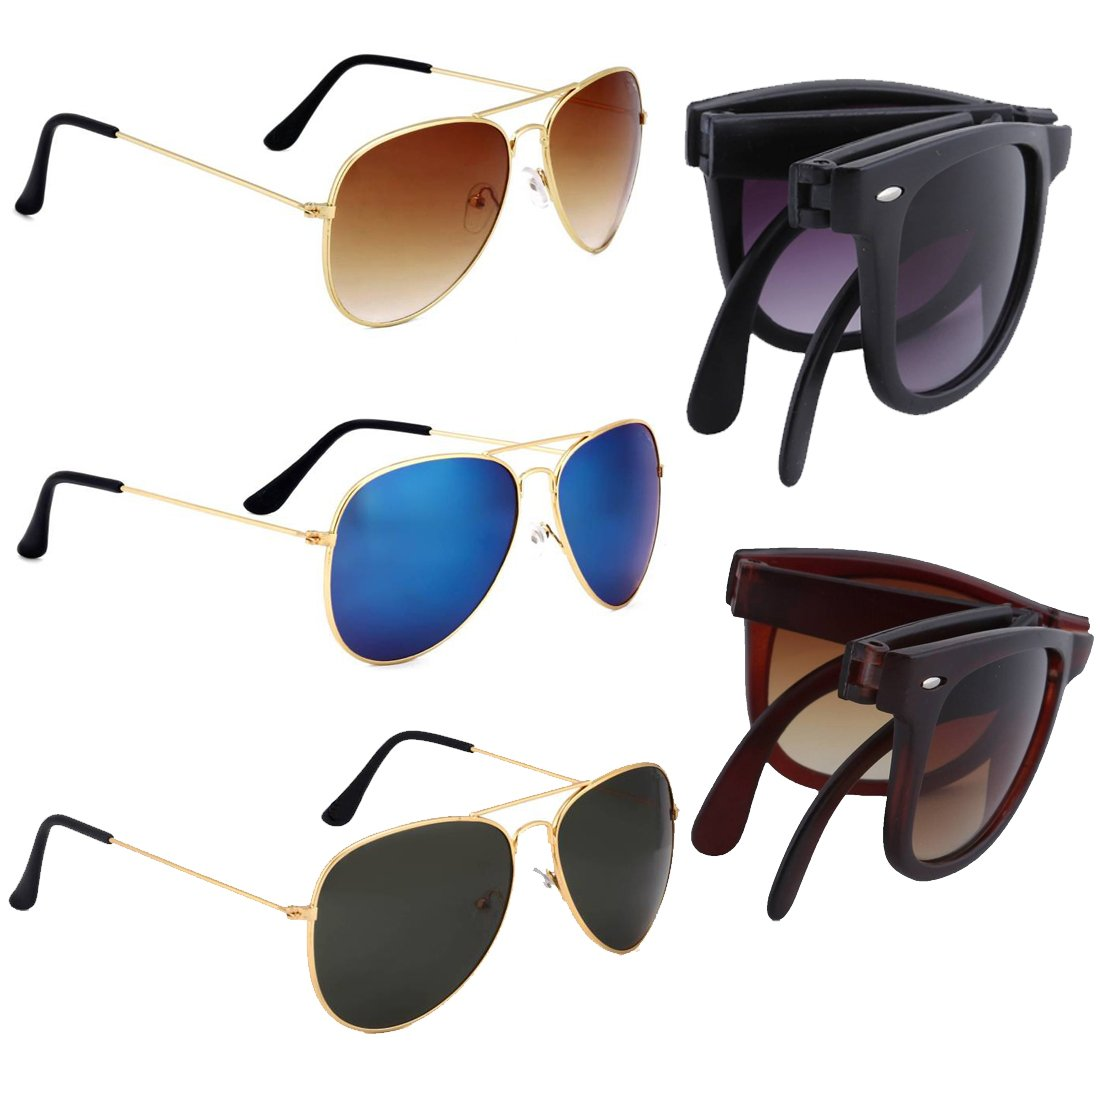 ELLIGATOR Combo of Multicolour Unisex Sunglasses